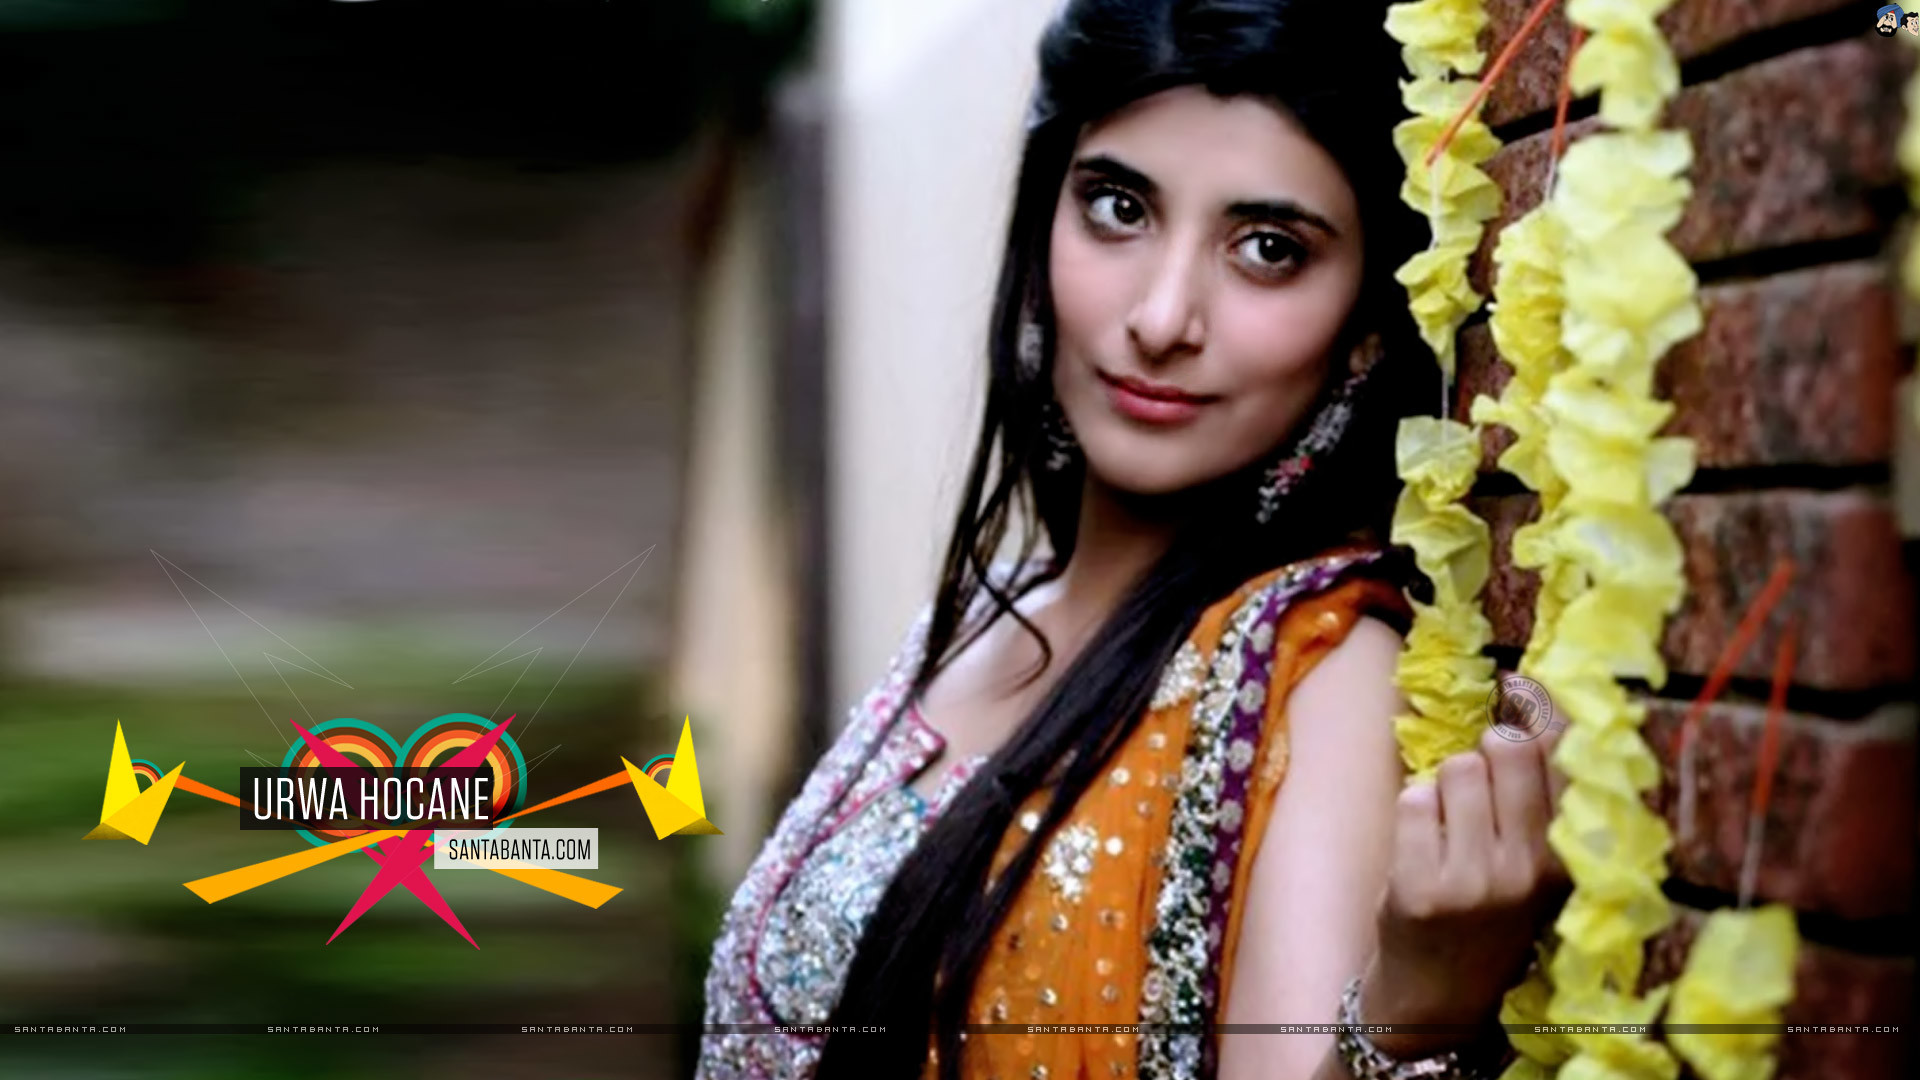 Pakistani Celebs(F) Urwa Hocane Wallpaper Wallpapers Also available in  screen resolutions.